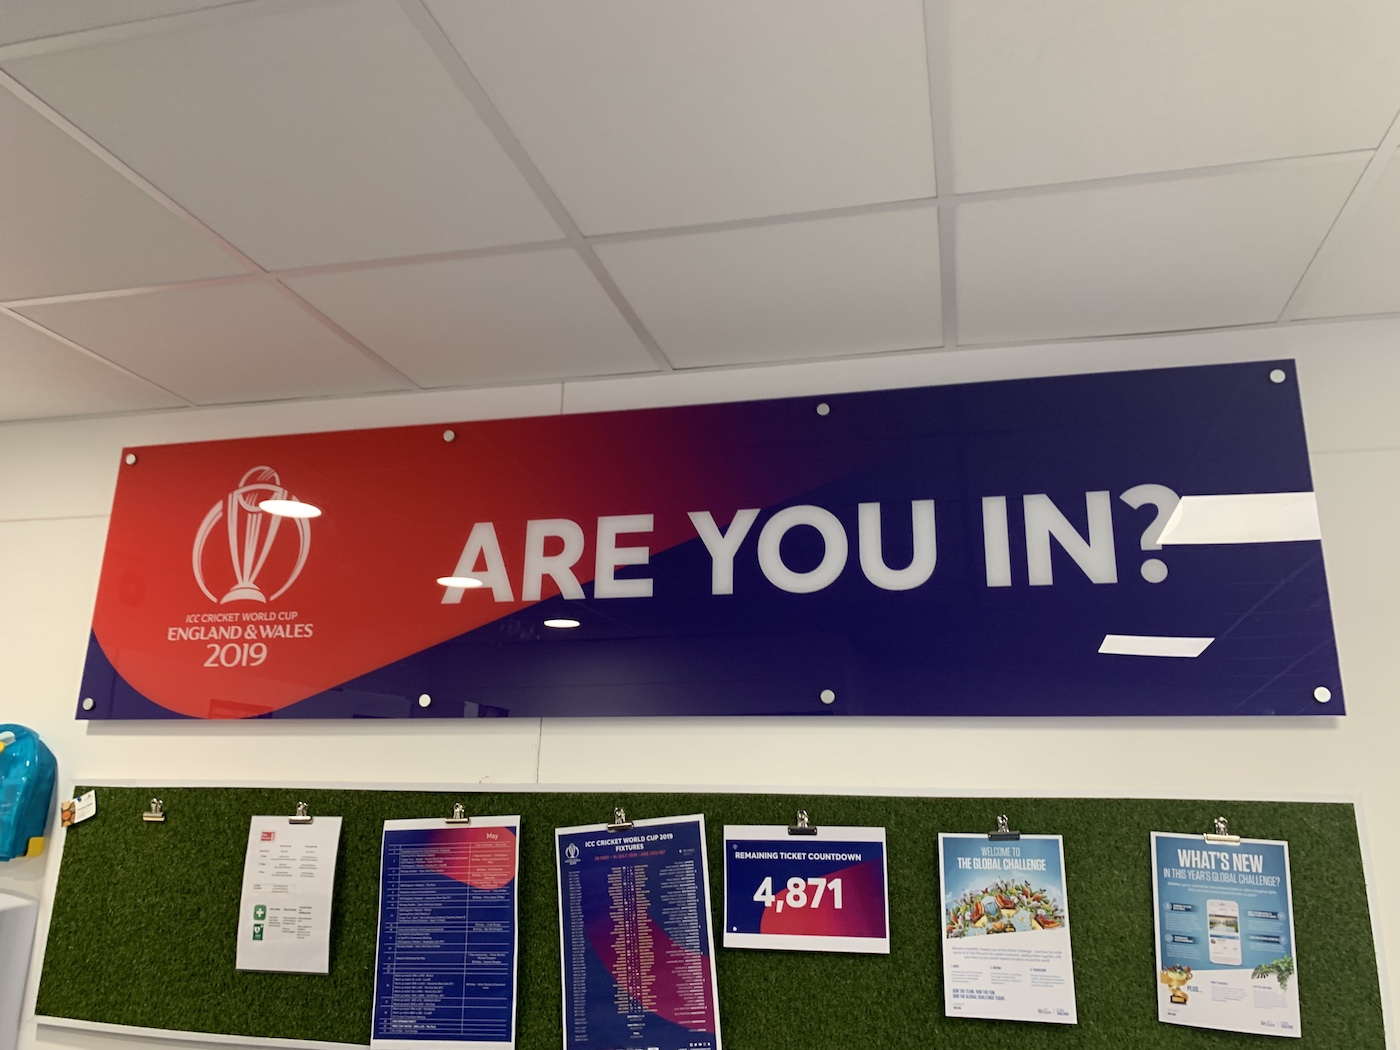 The World Cup pinboard has just one question for you